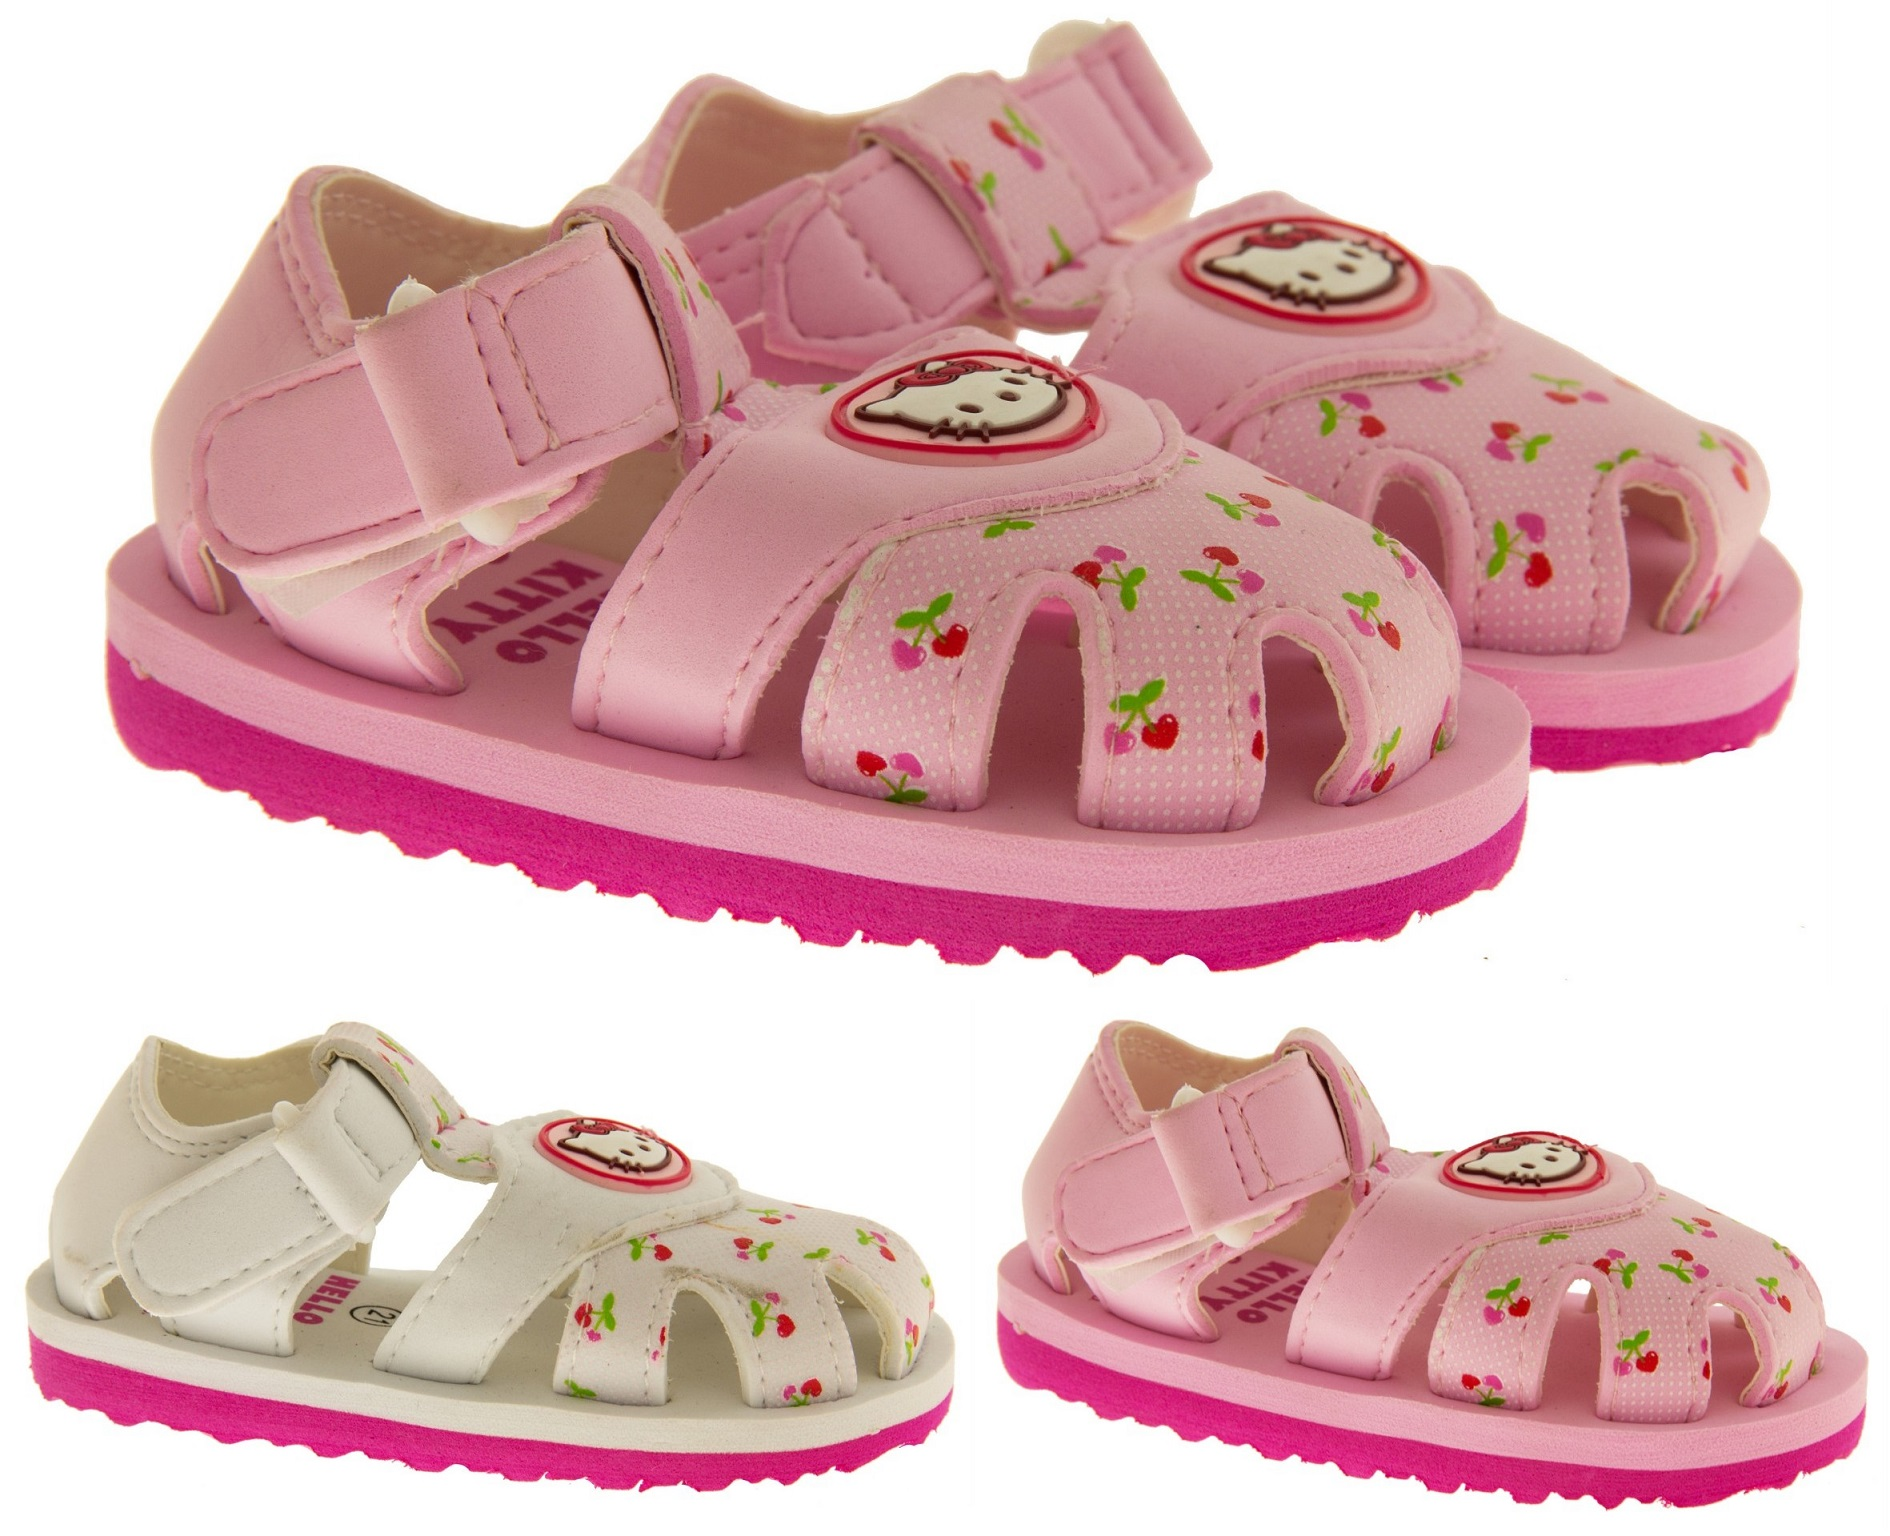 ea8f174b6758 Baby Girls Hello Kitty Sandals Kids Pink White Beach Summer Shoes Size 4  4.5 5 6